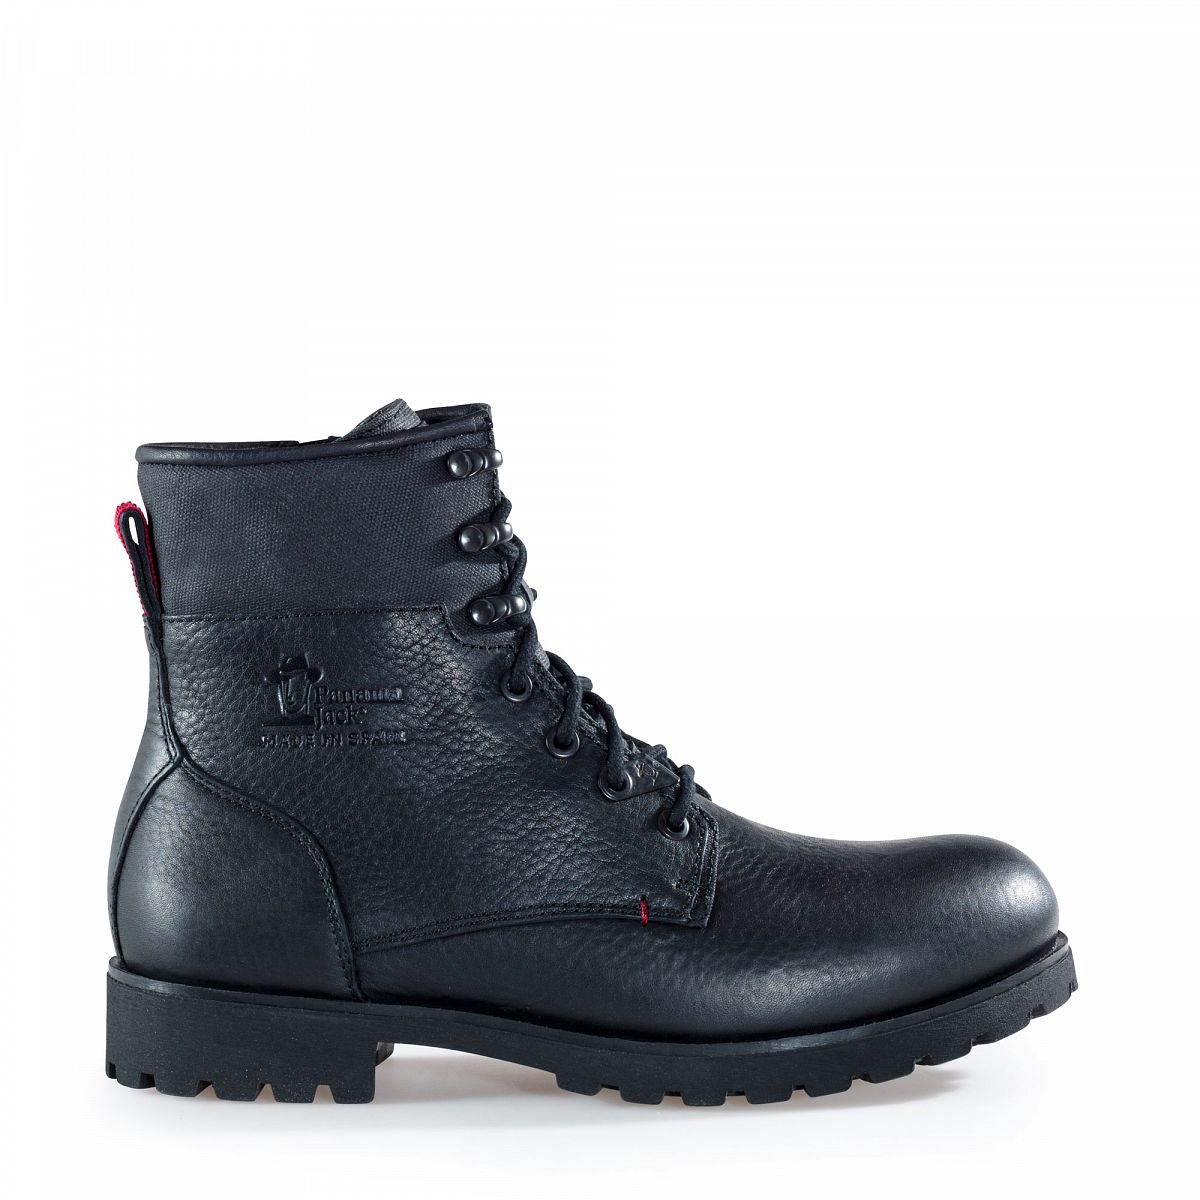 s boots barkley black panama official store